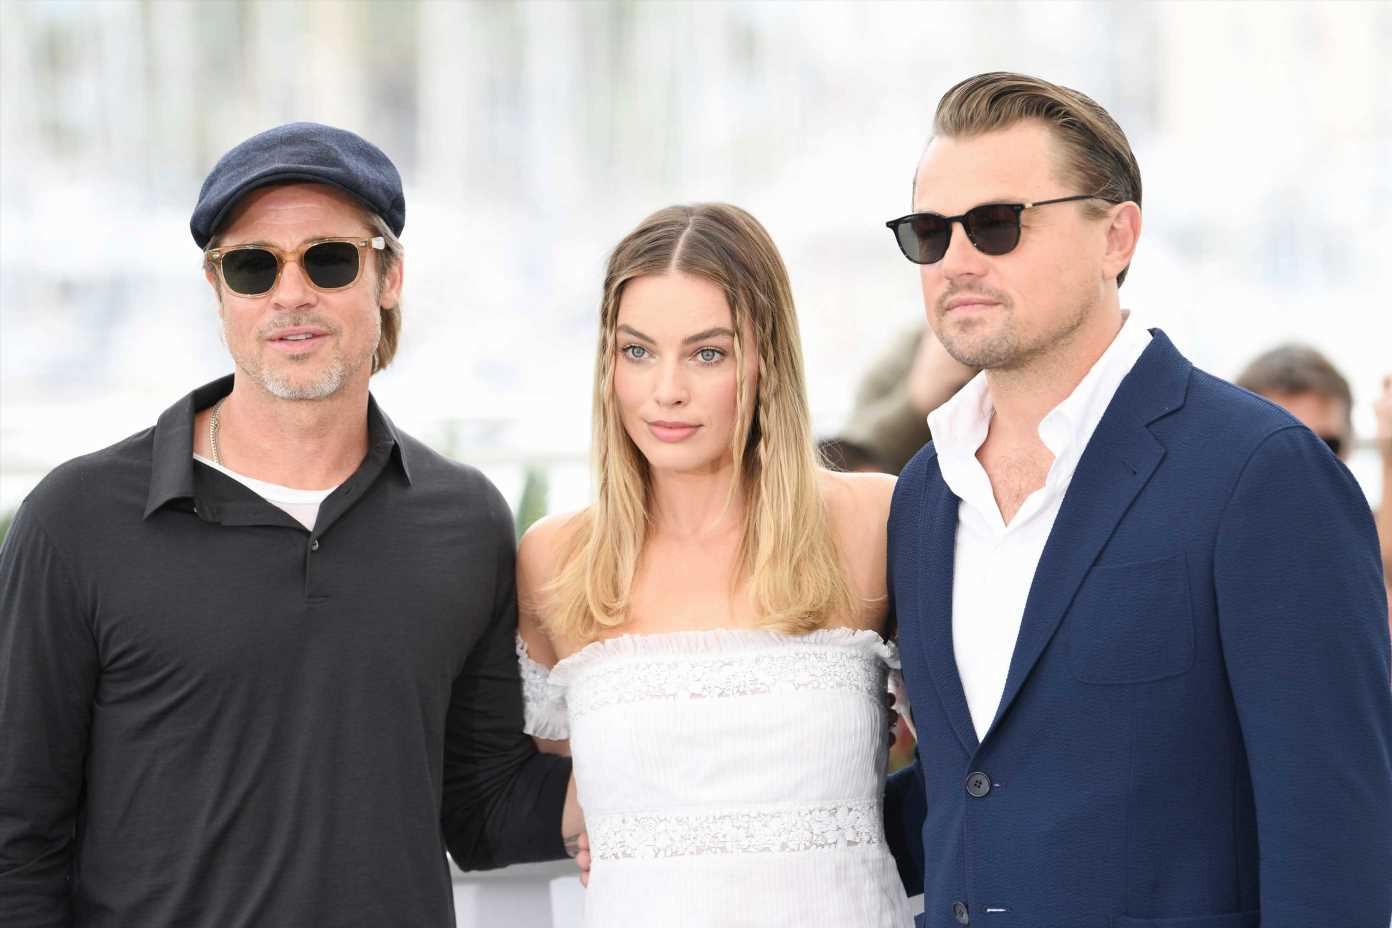 Brad Pitt and Leonardo DiCaprio's bromance takes over Cannes